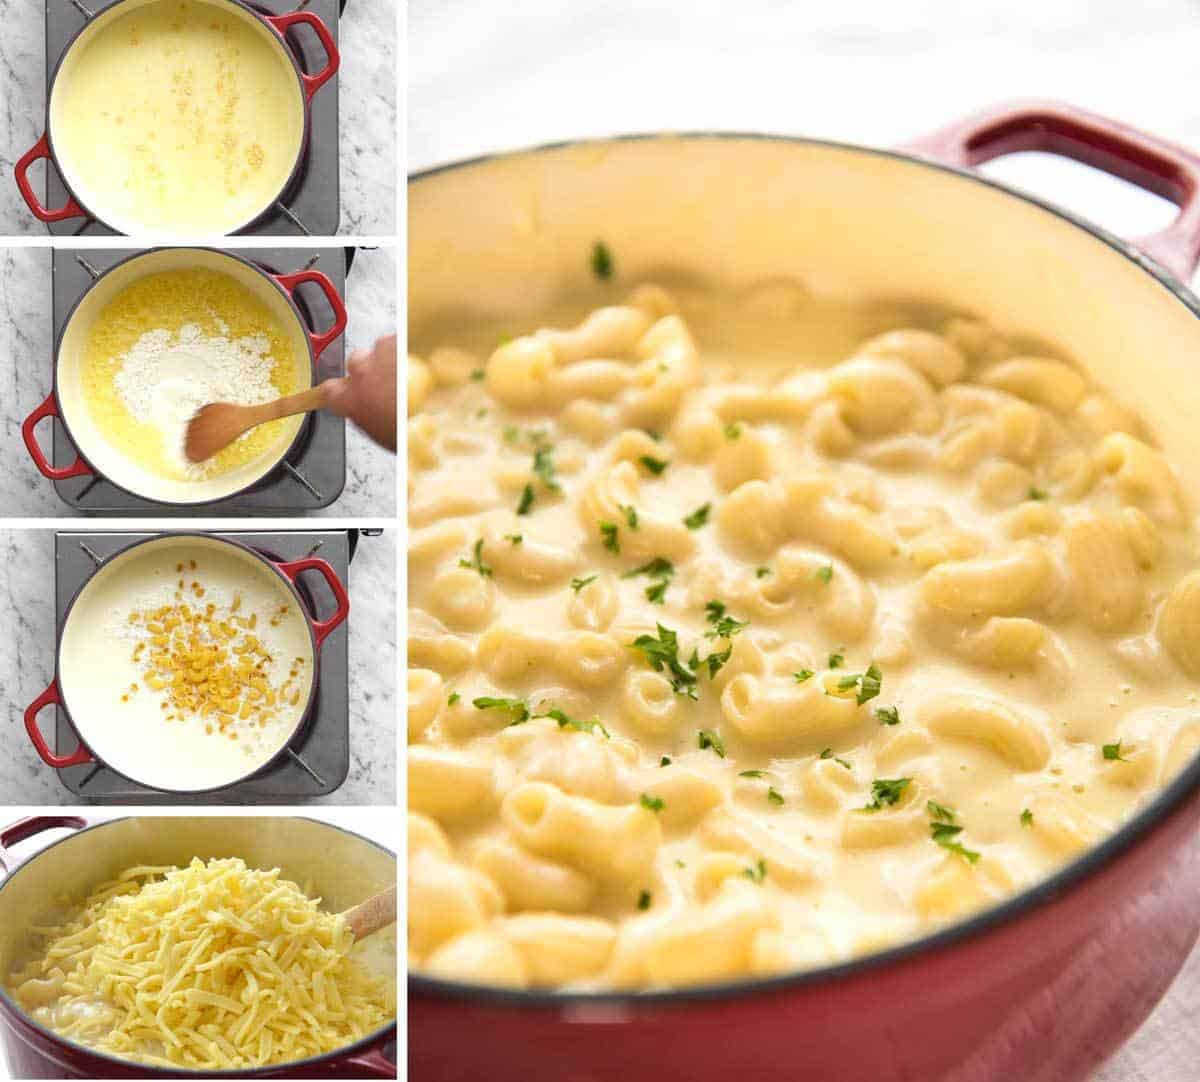 This Stovetop Macaroni and Cheese is all made in one pot! The sauce is incredibly silky, cheesy and the pasta is cooked to perfection. On the table in 20 minutes! www.recipetineats.com